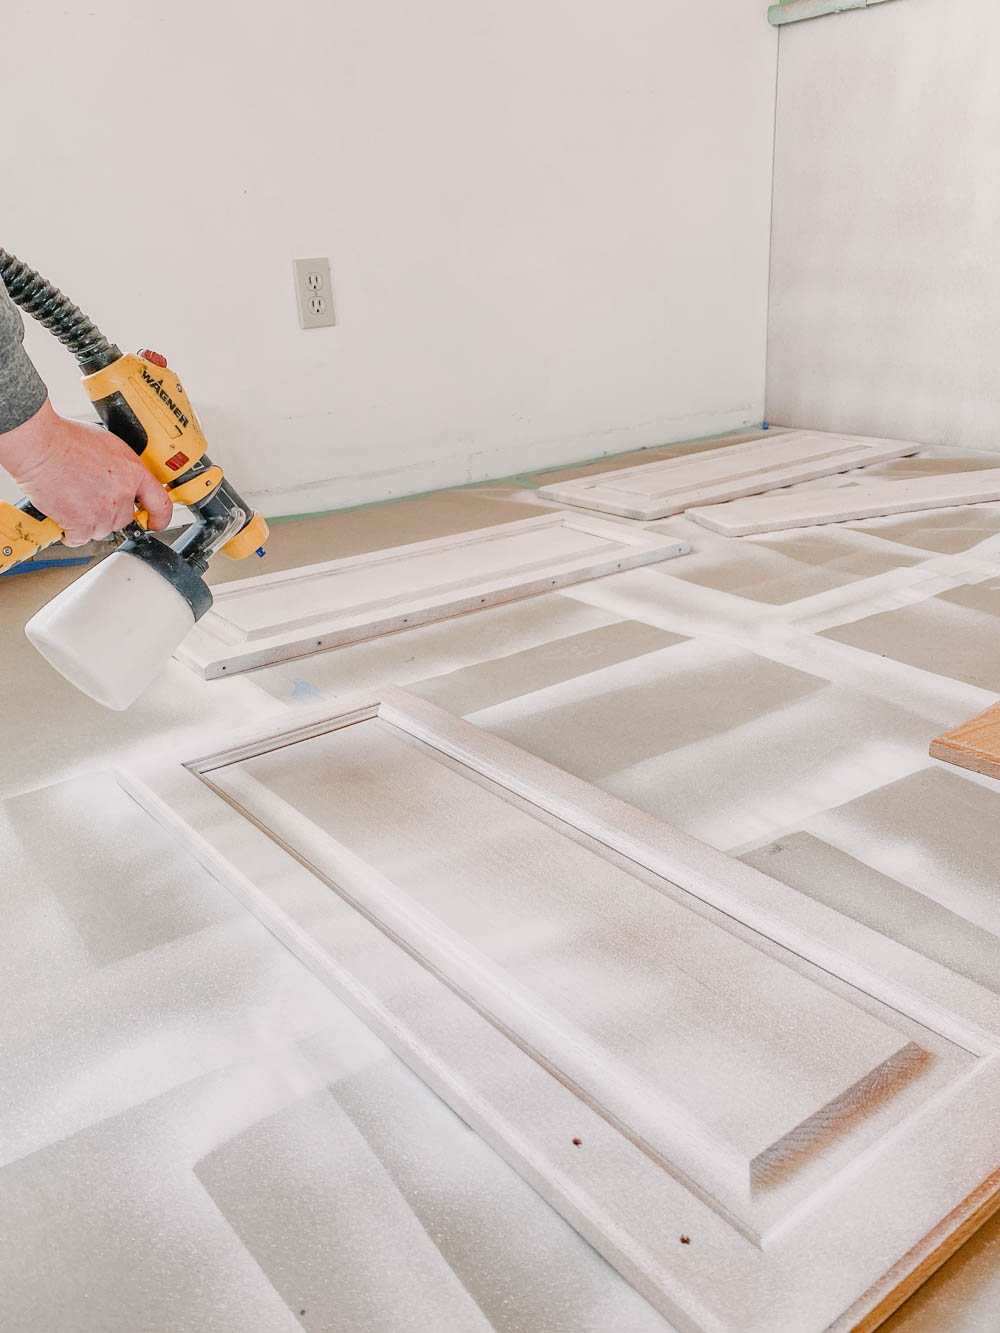 Spraying Paint for Cabinets